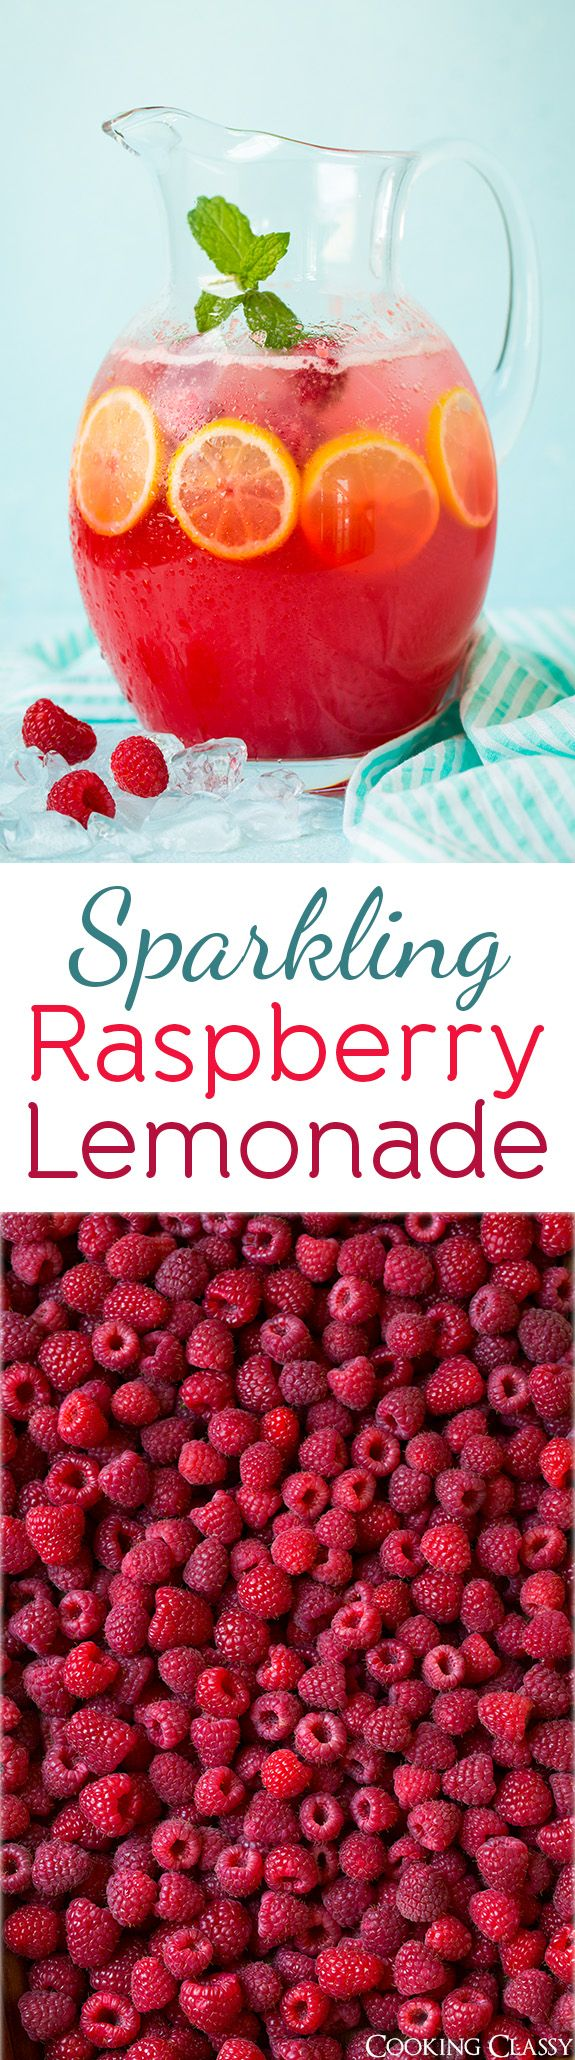 Sparkling Raspberry Lemonade - Cooking Classy